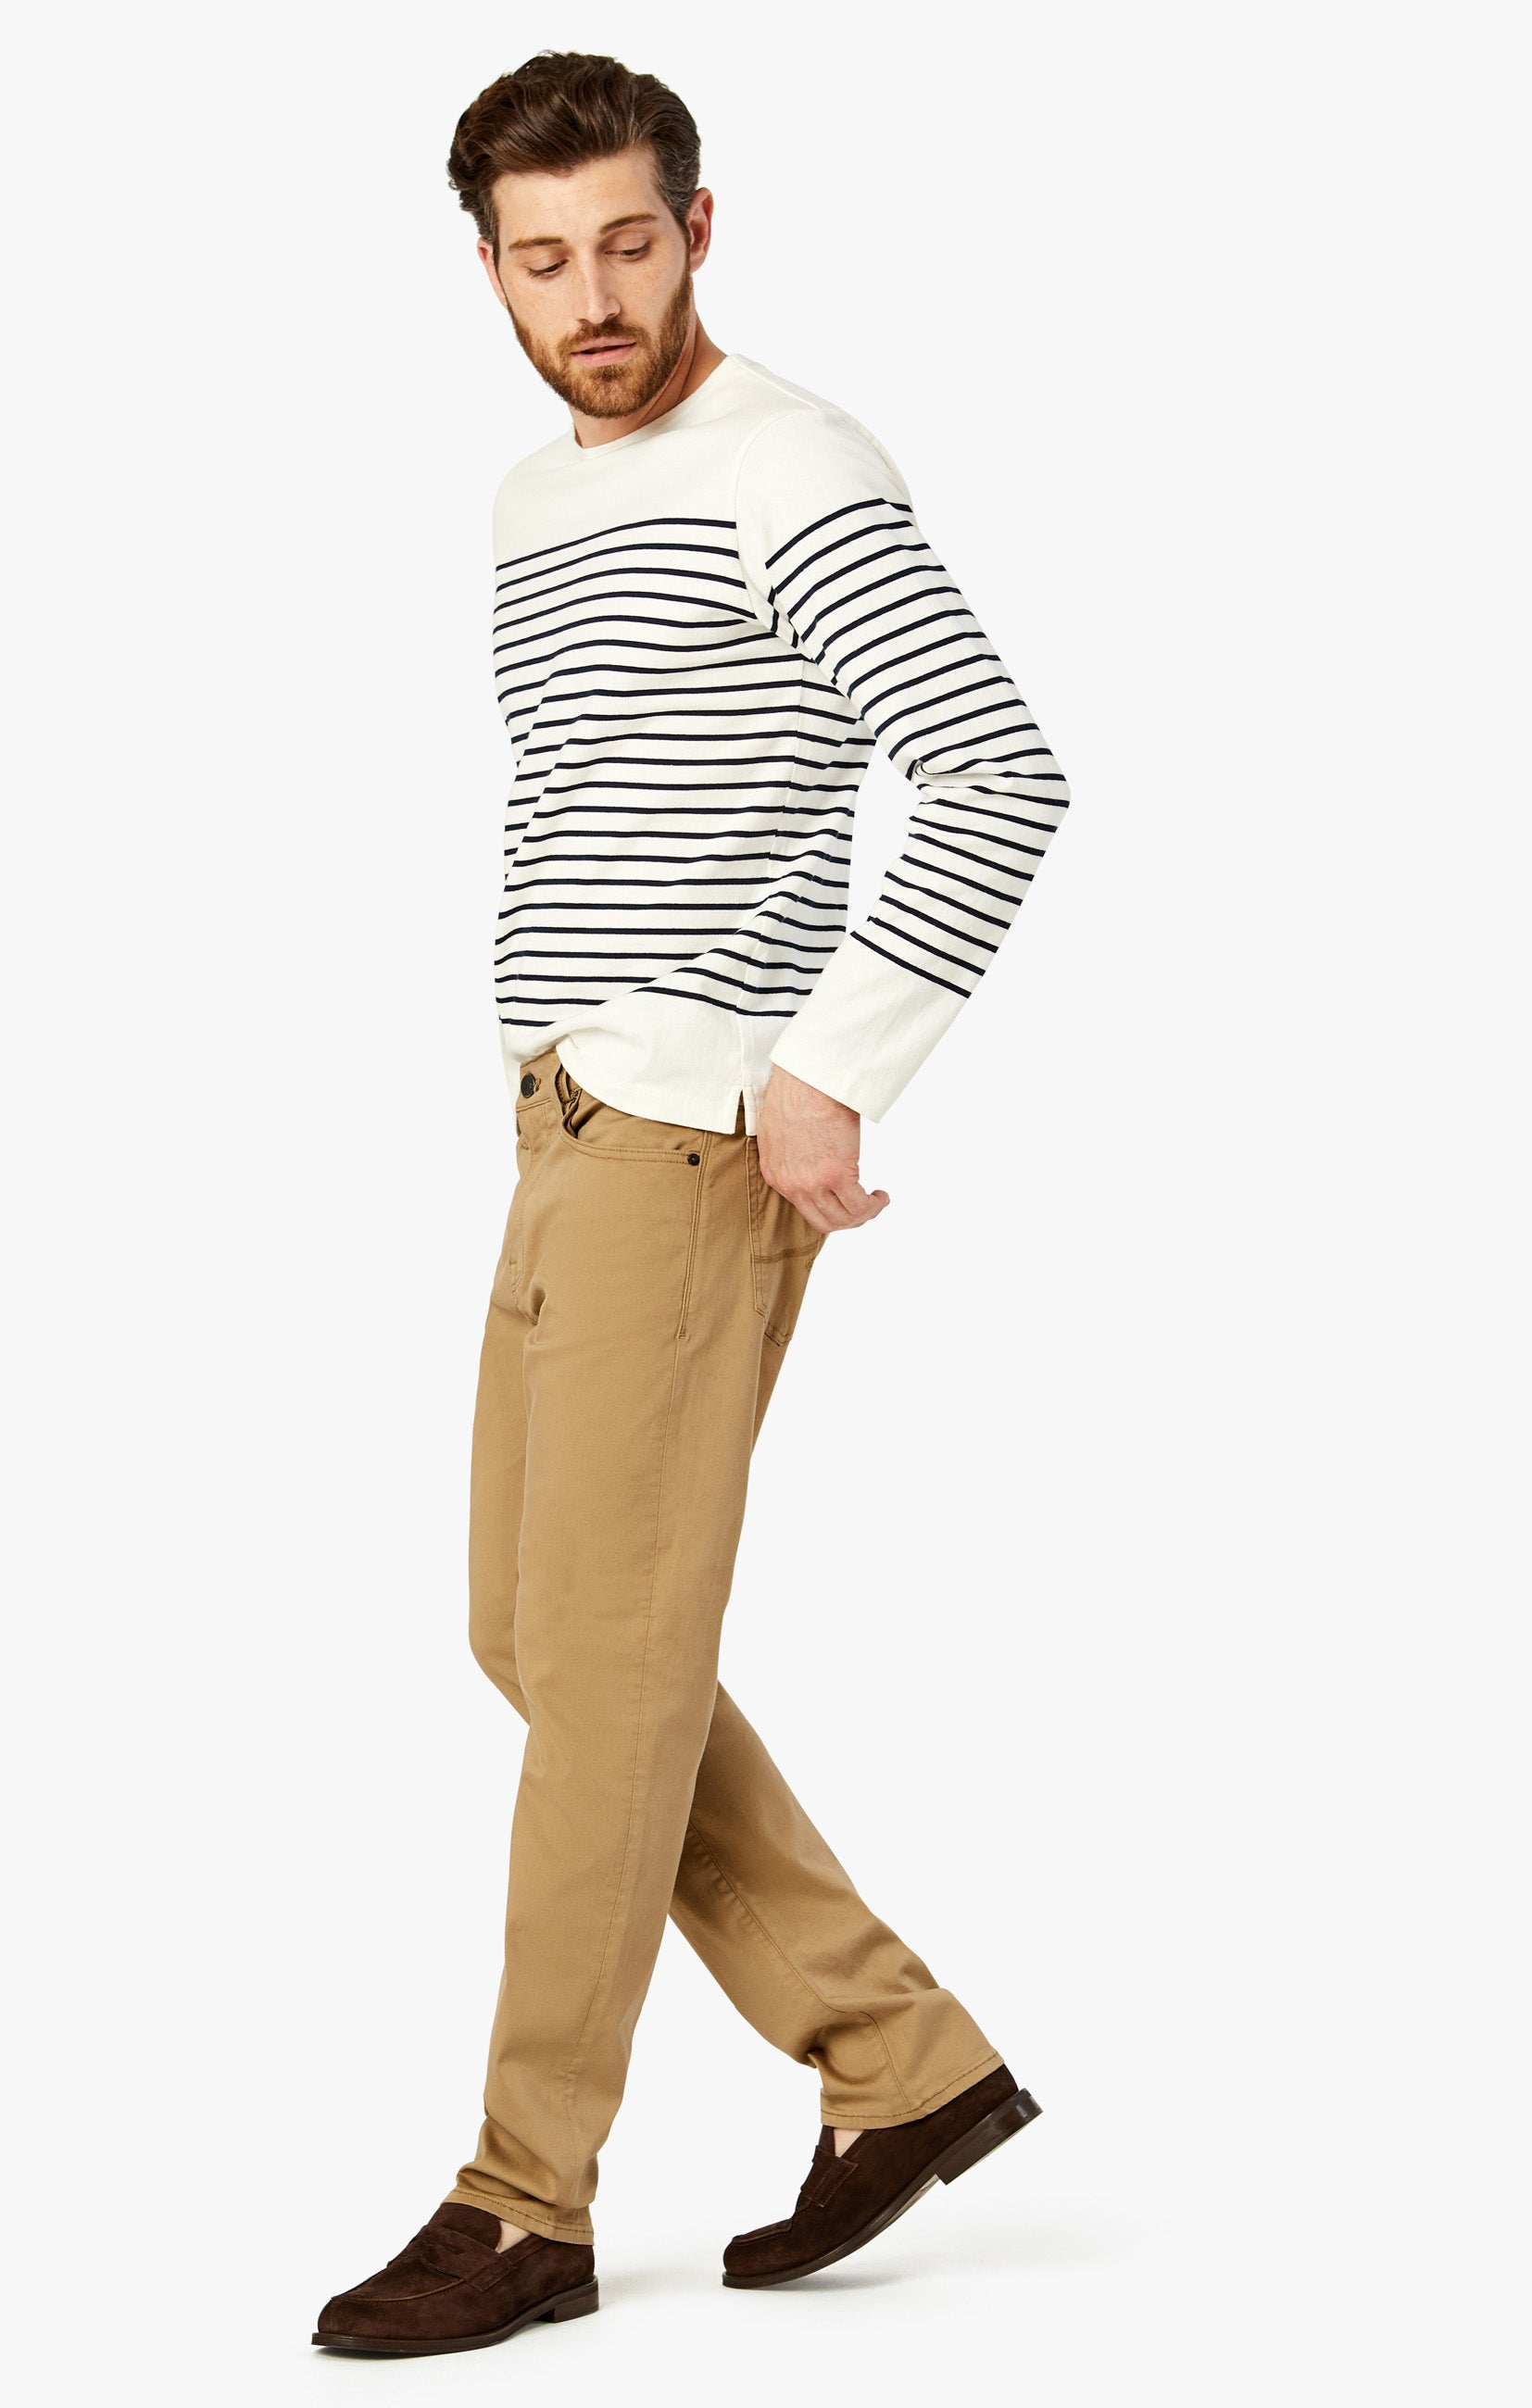 Courage Straight Leg Pants In Khaki Twill Image 1